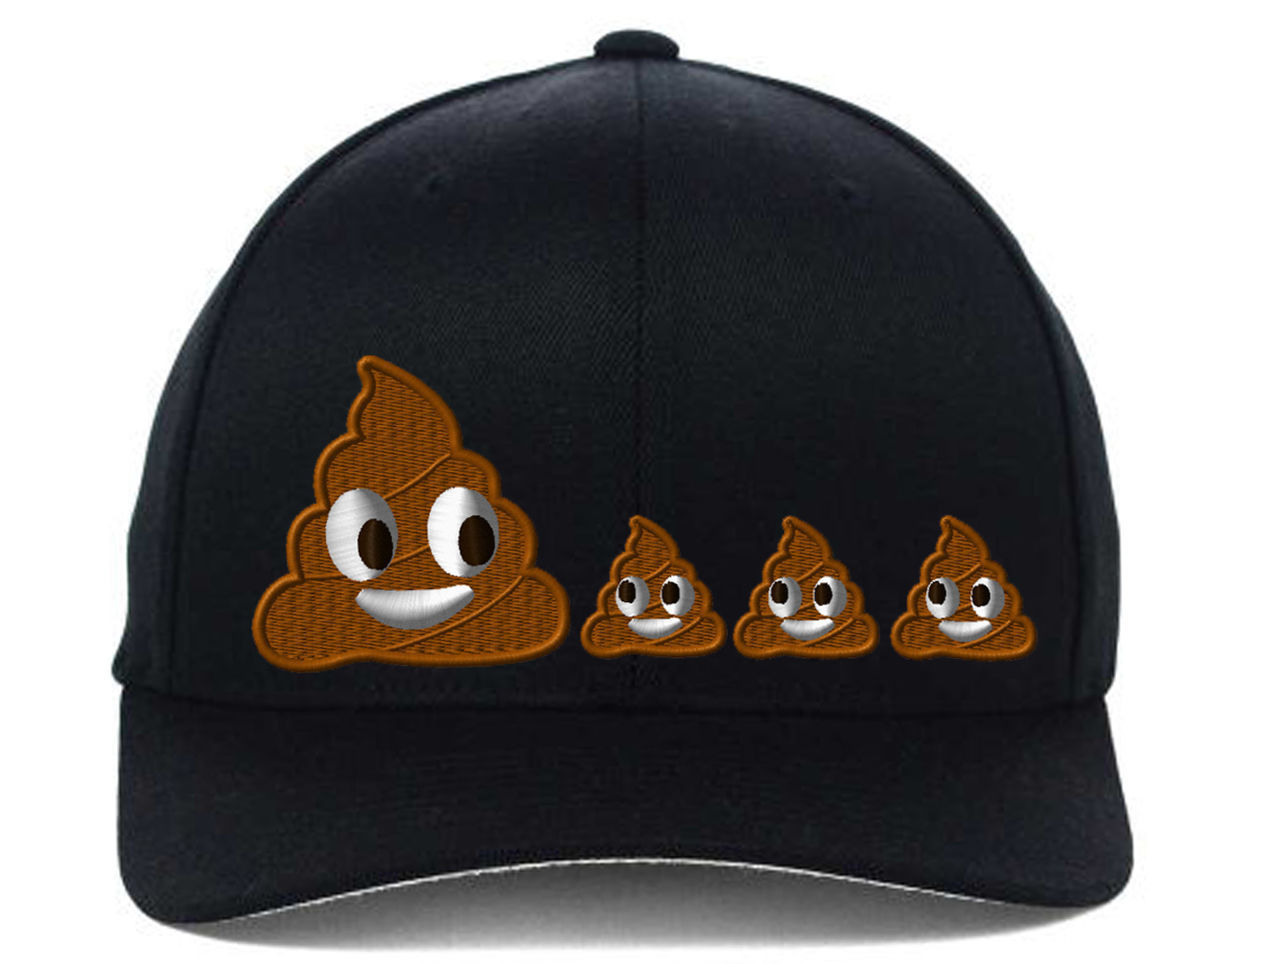 POO POOP FAMILY EMOJI, Flexfit Fine Finished Embroidery Hats